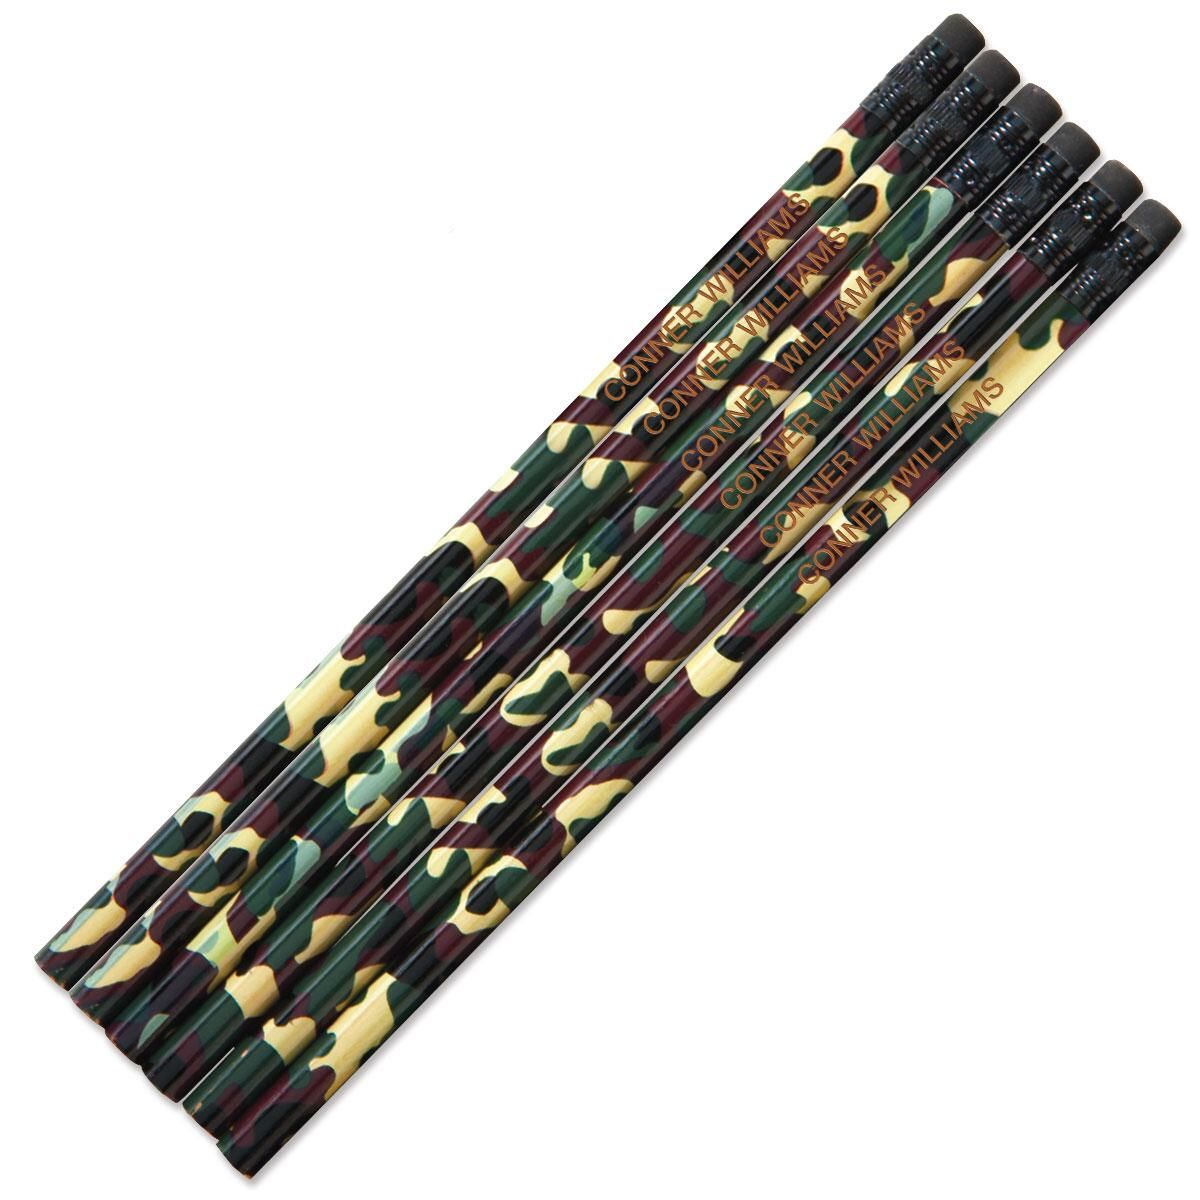 #2 Personalized Hardwood Pencils - Camouflage